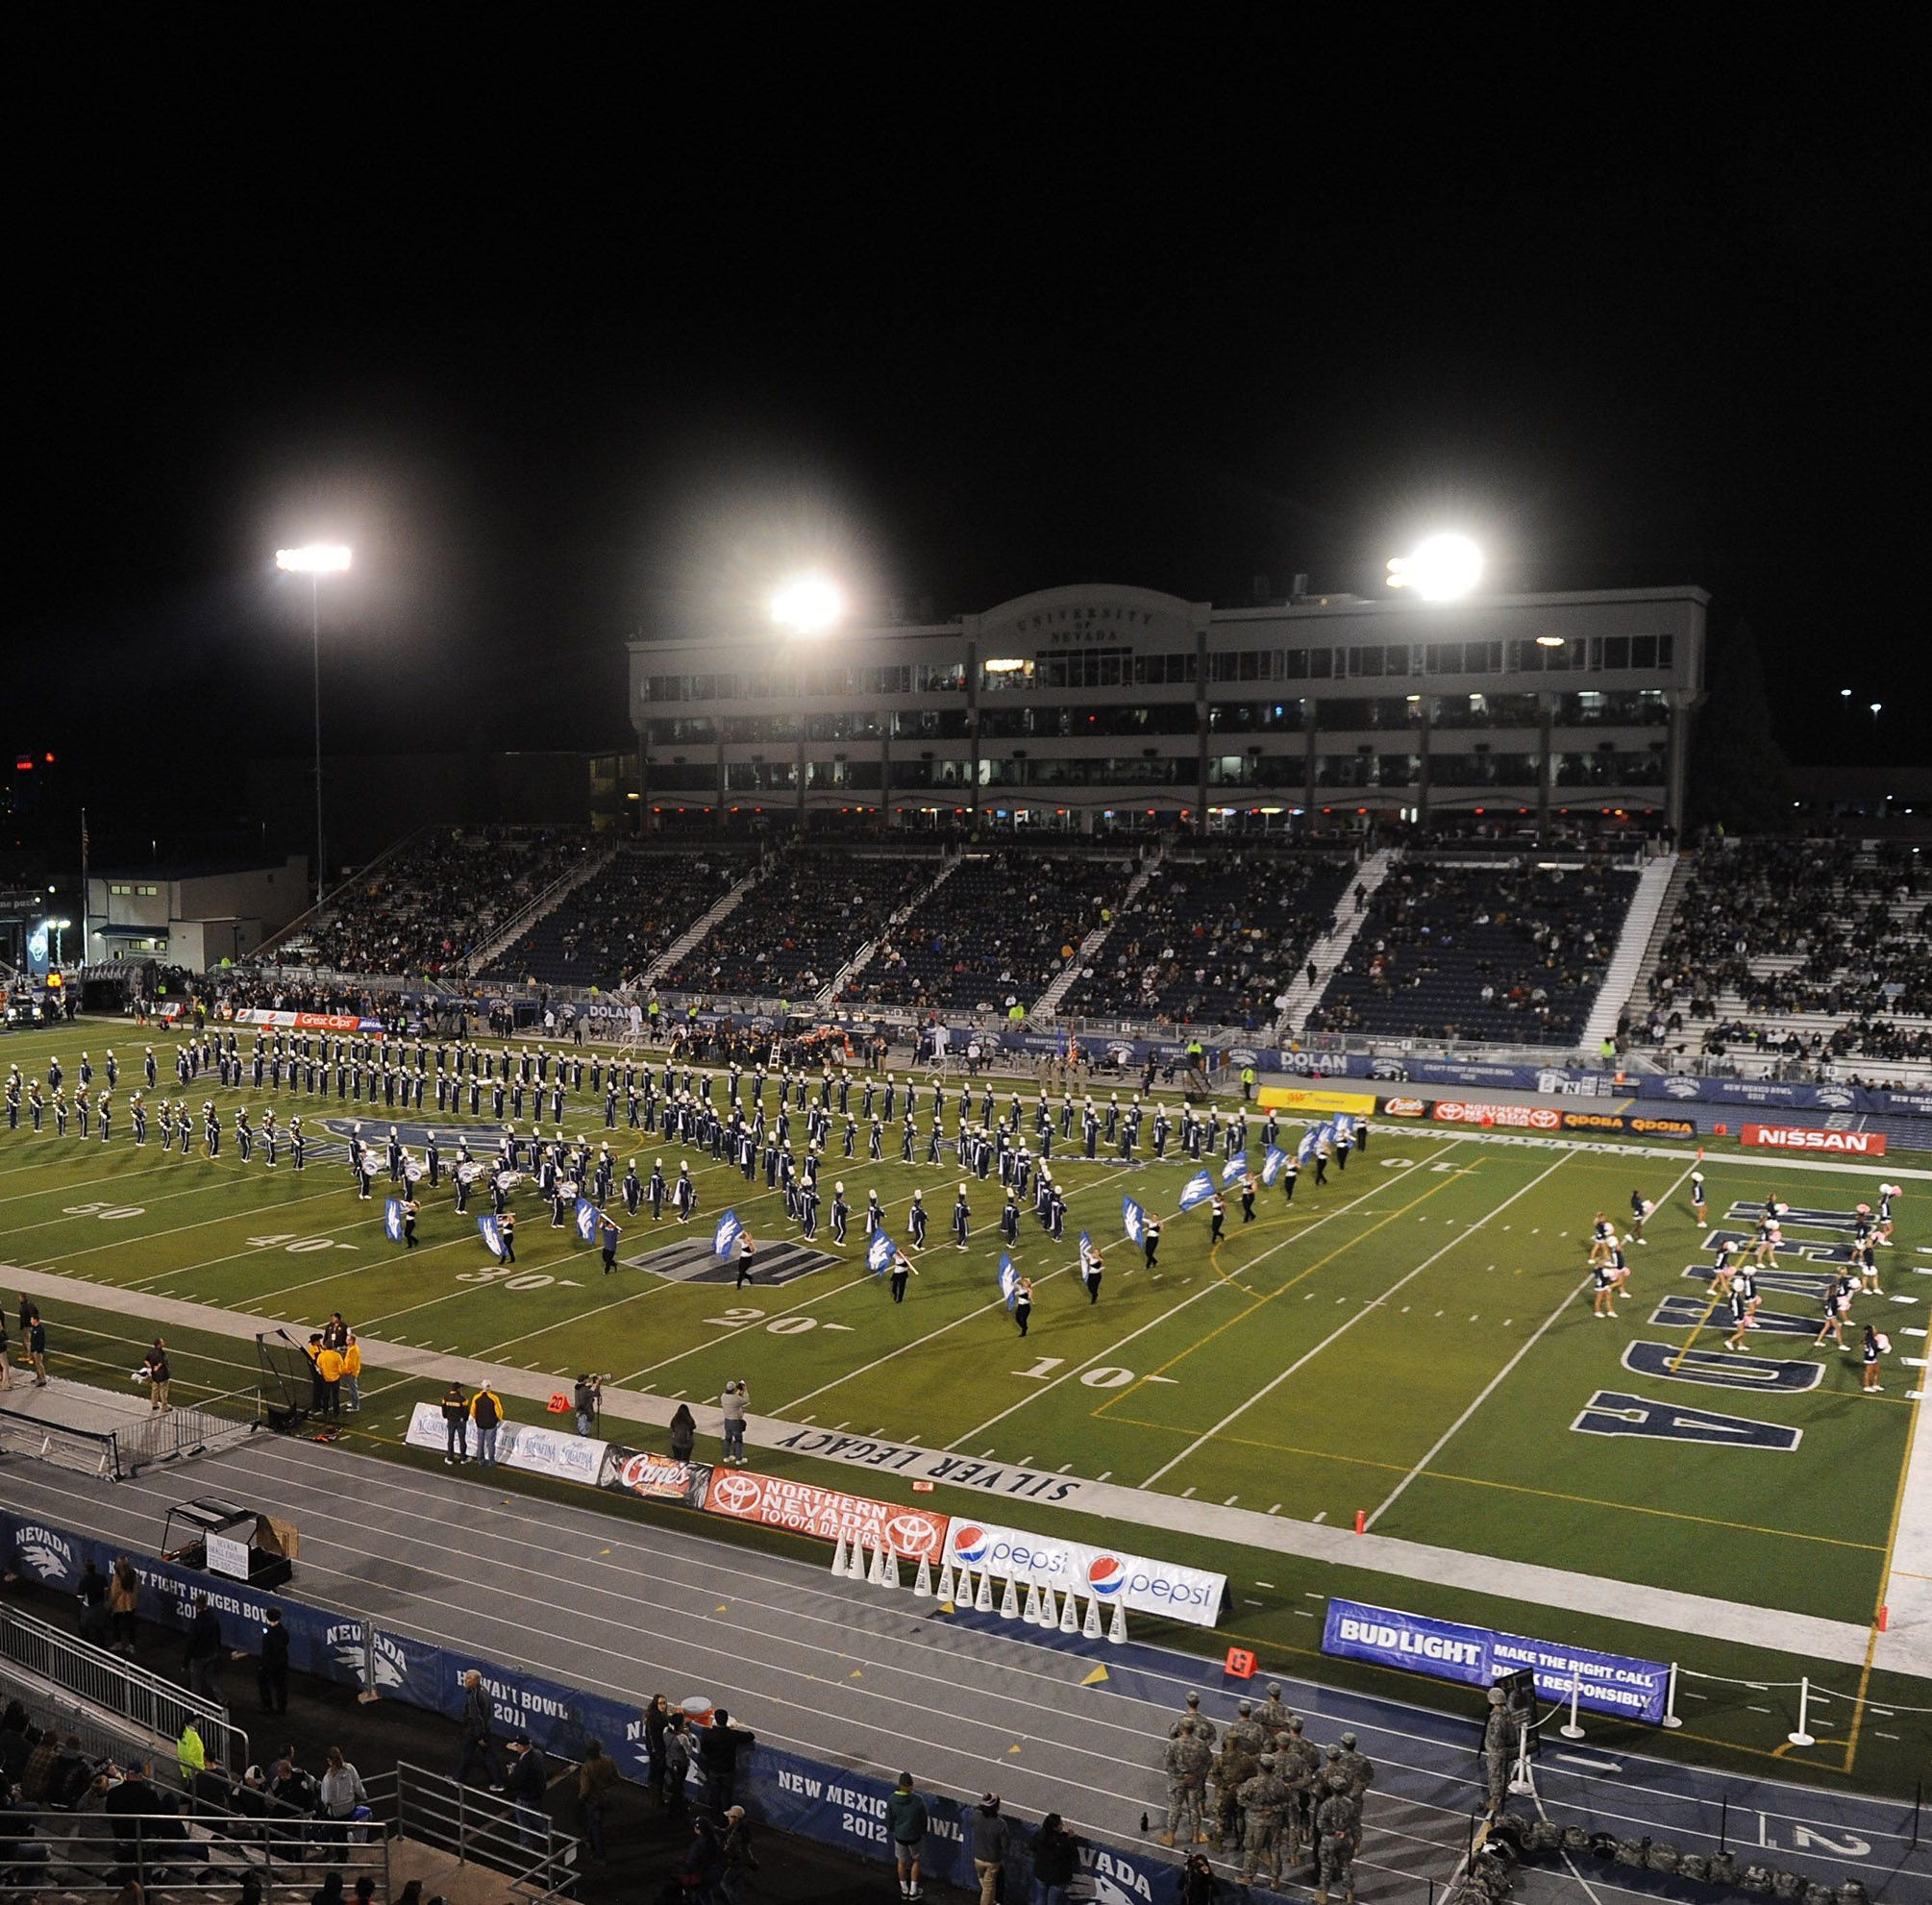 Causeway Classic moved to Mackay Stadium